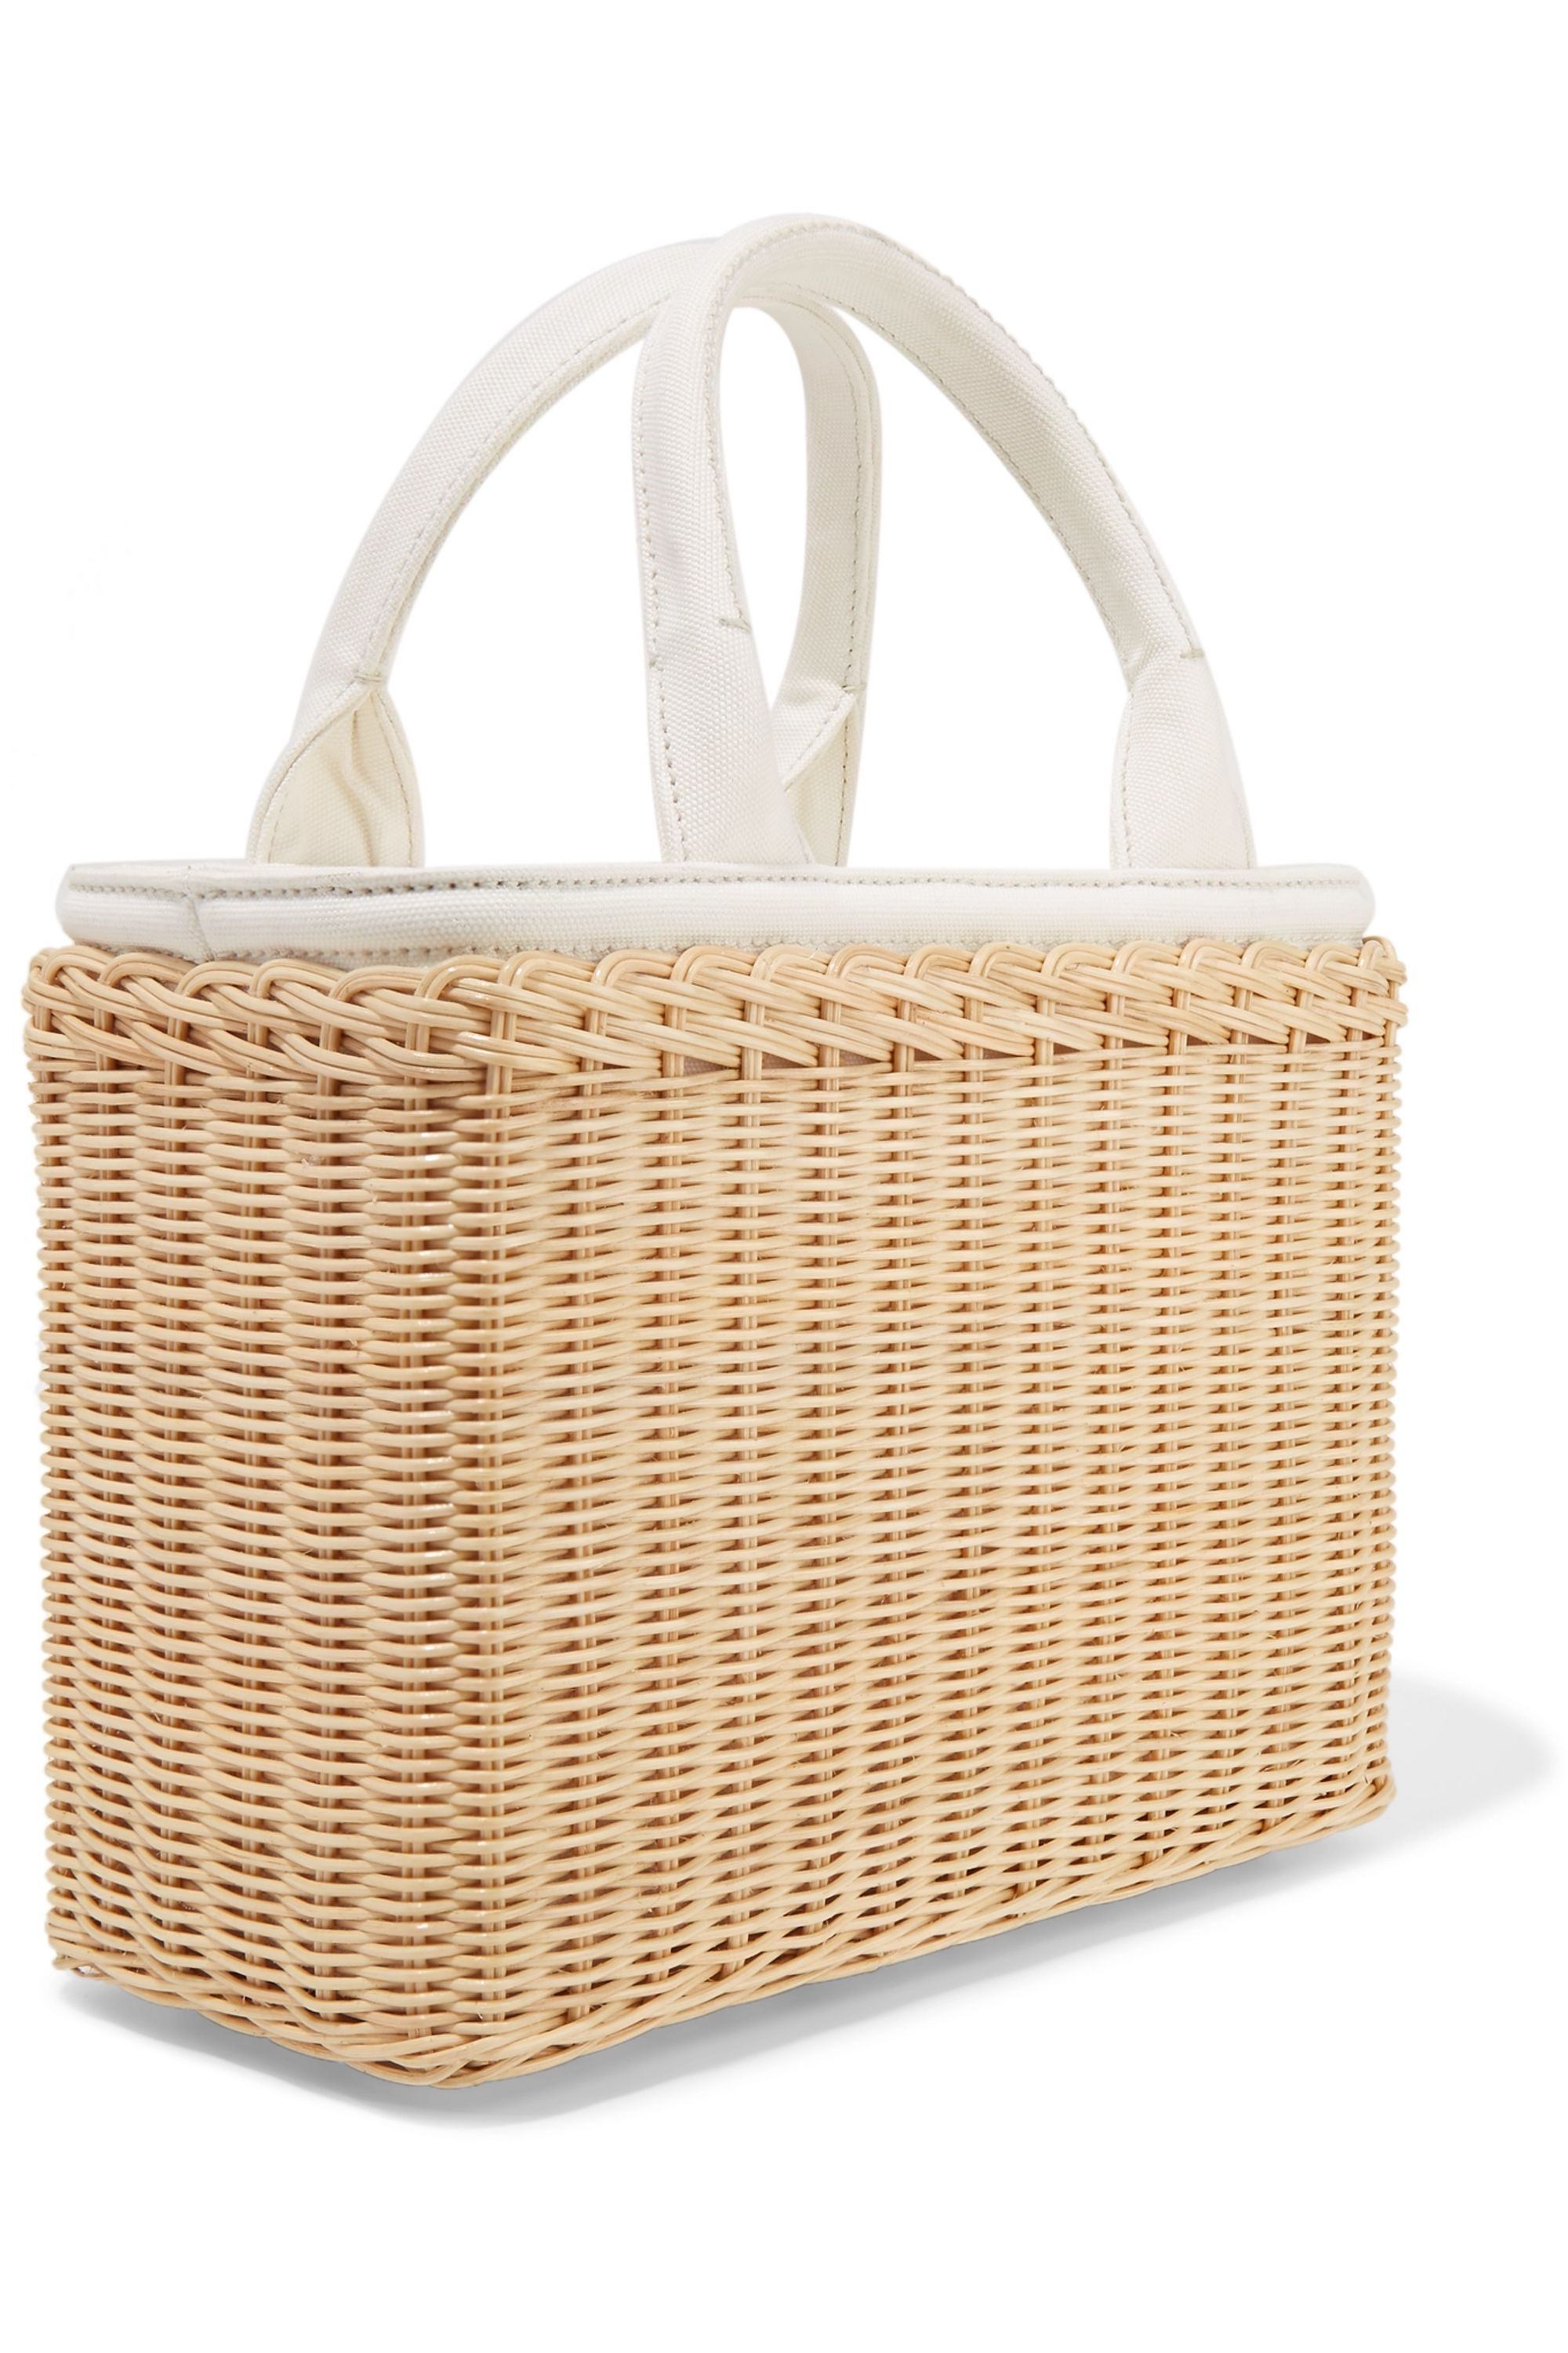 Prada Midollino tasseled canvas and leather-trimmed wicker tote